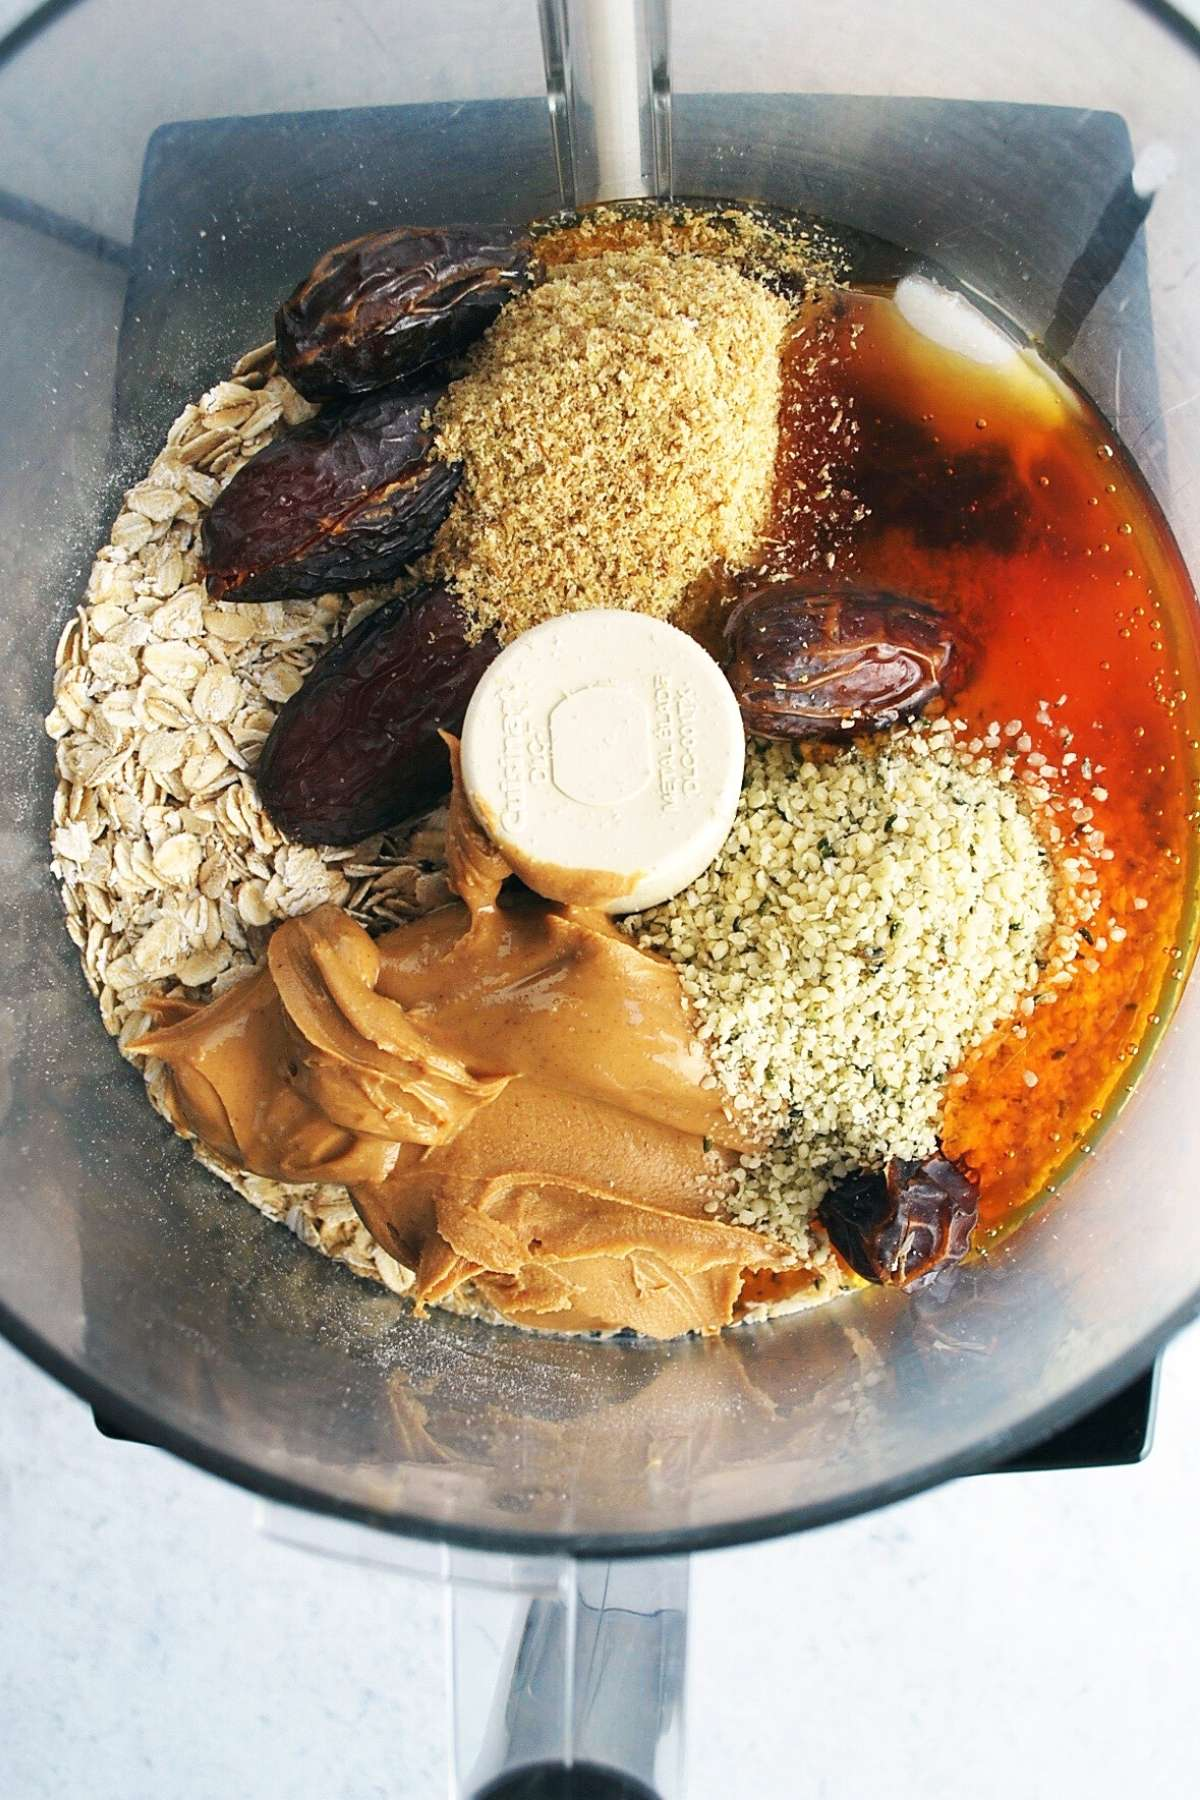 peanut butter protein ball ingredients in a food processor ready to blend